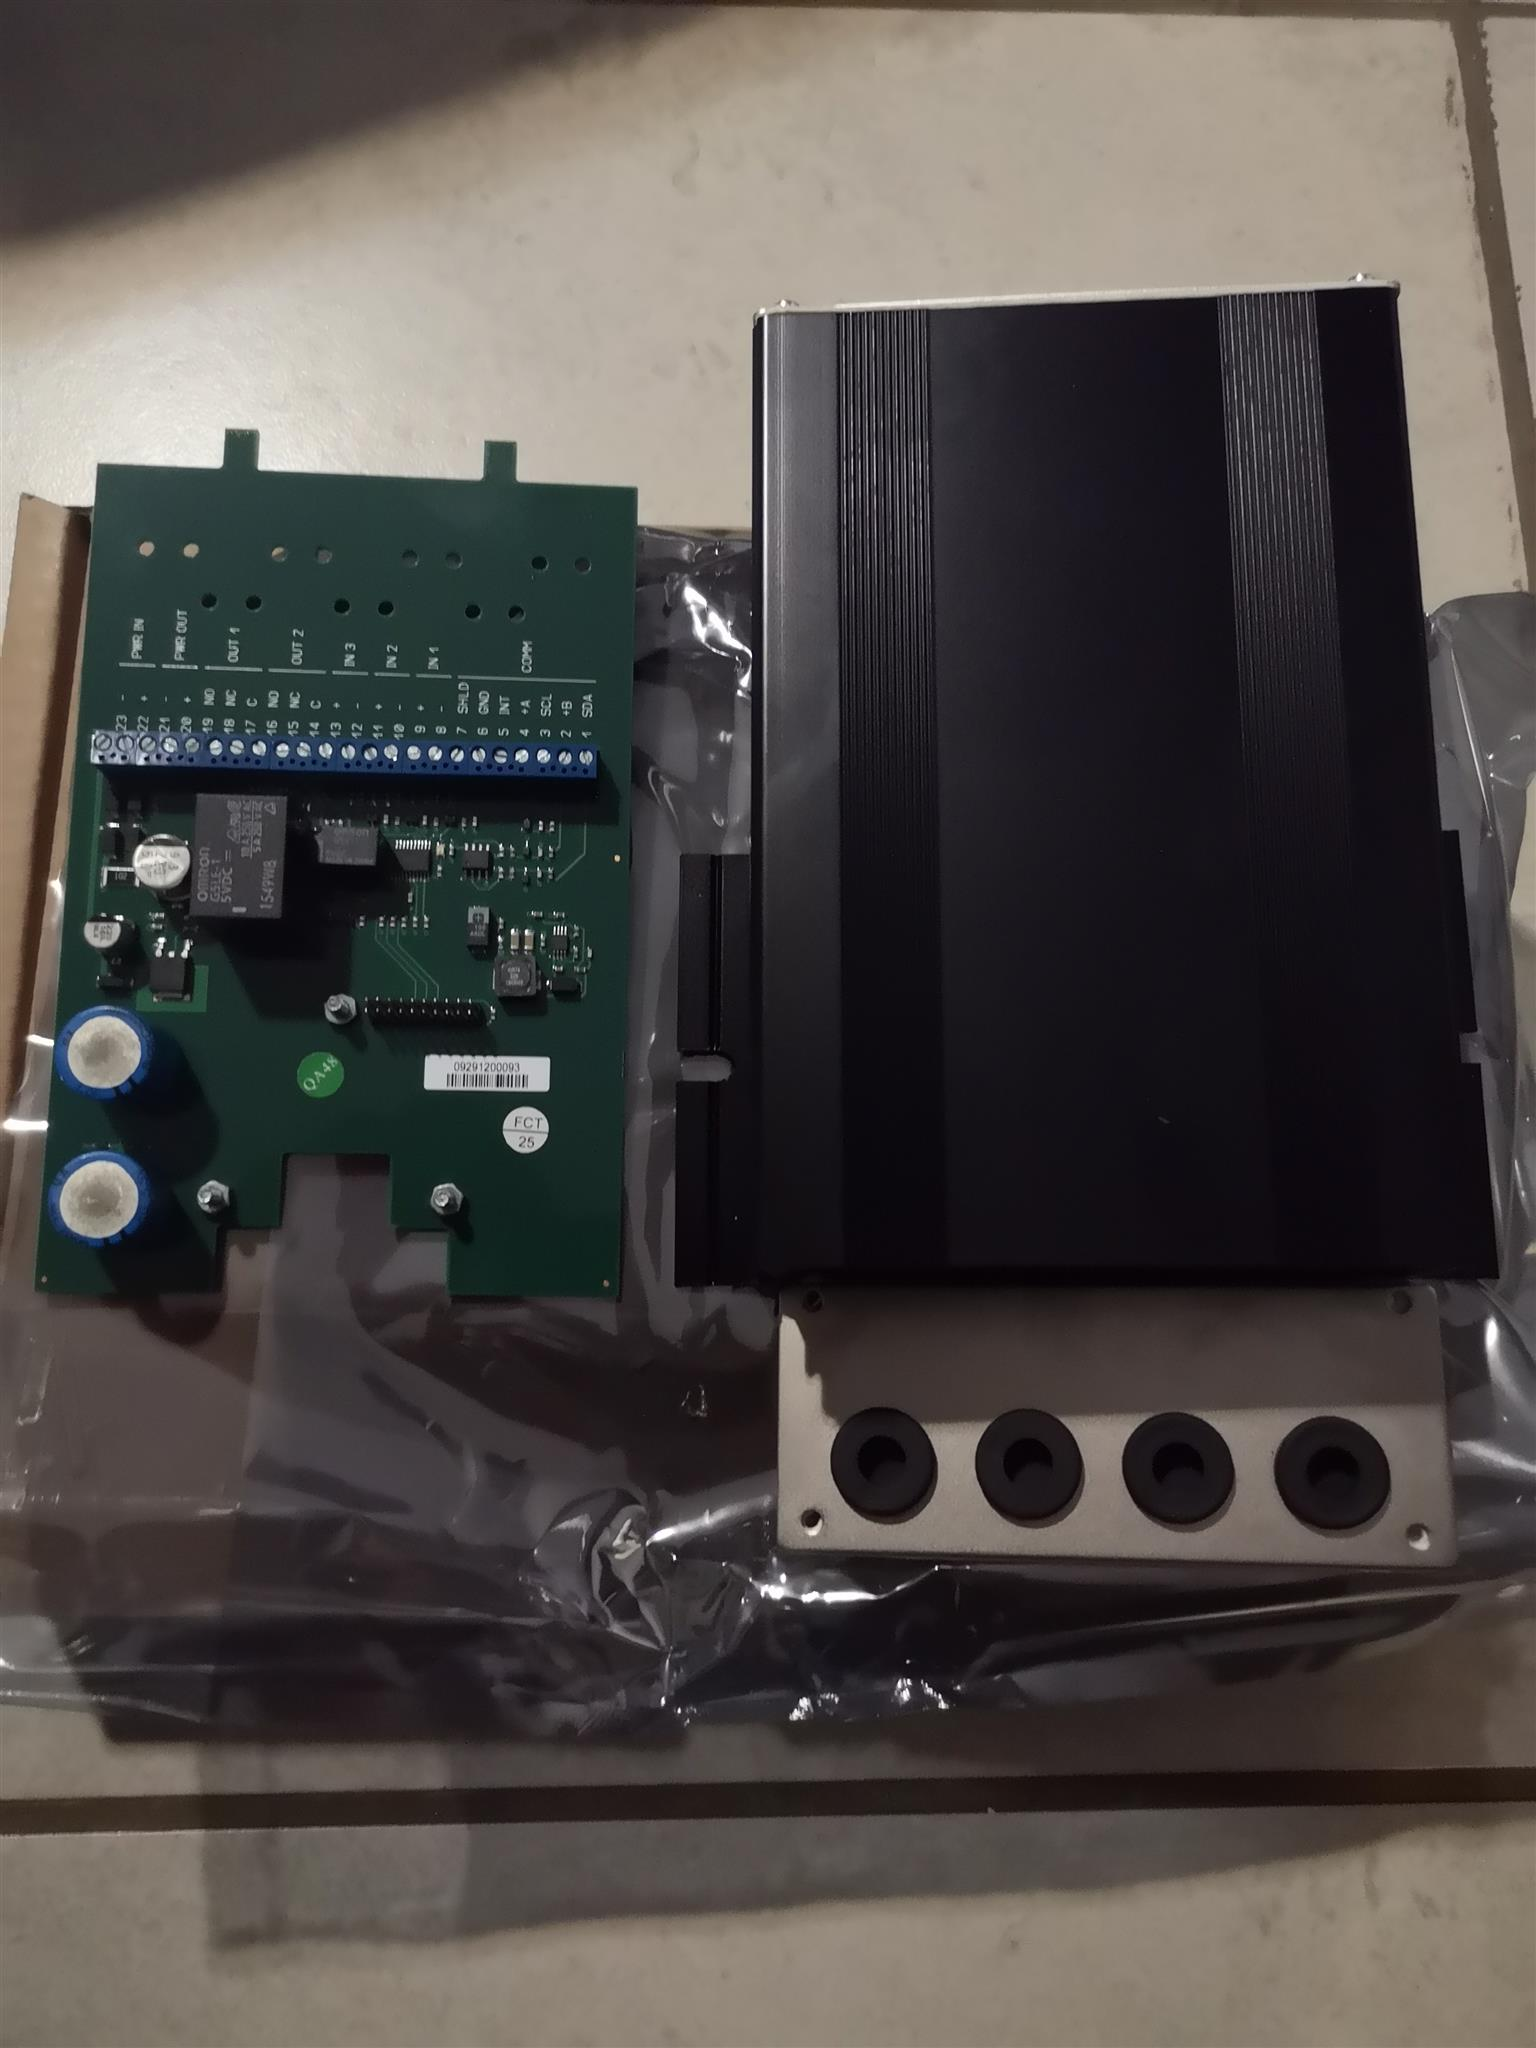 Ving card 2800 system Relay Board